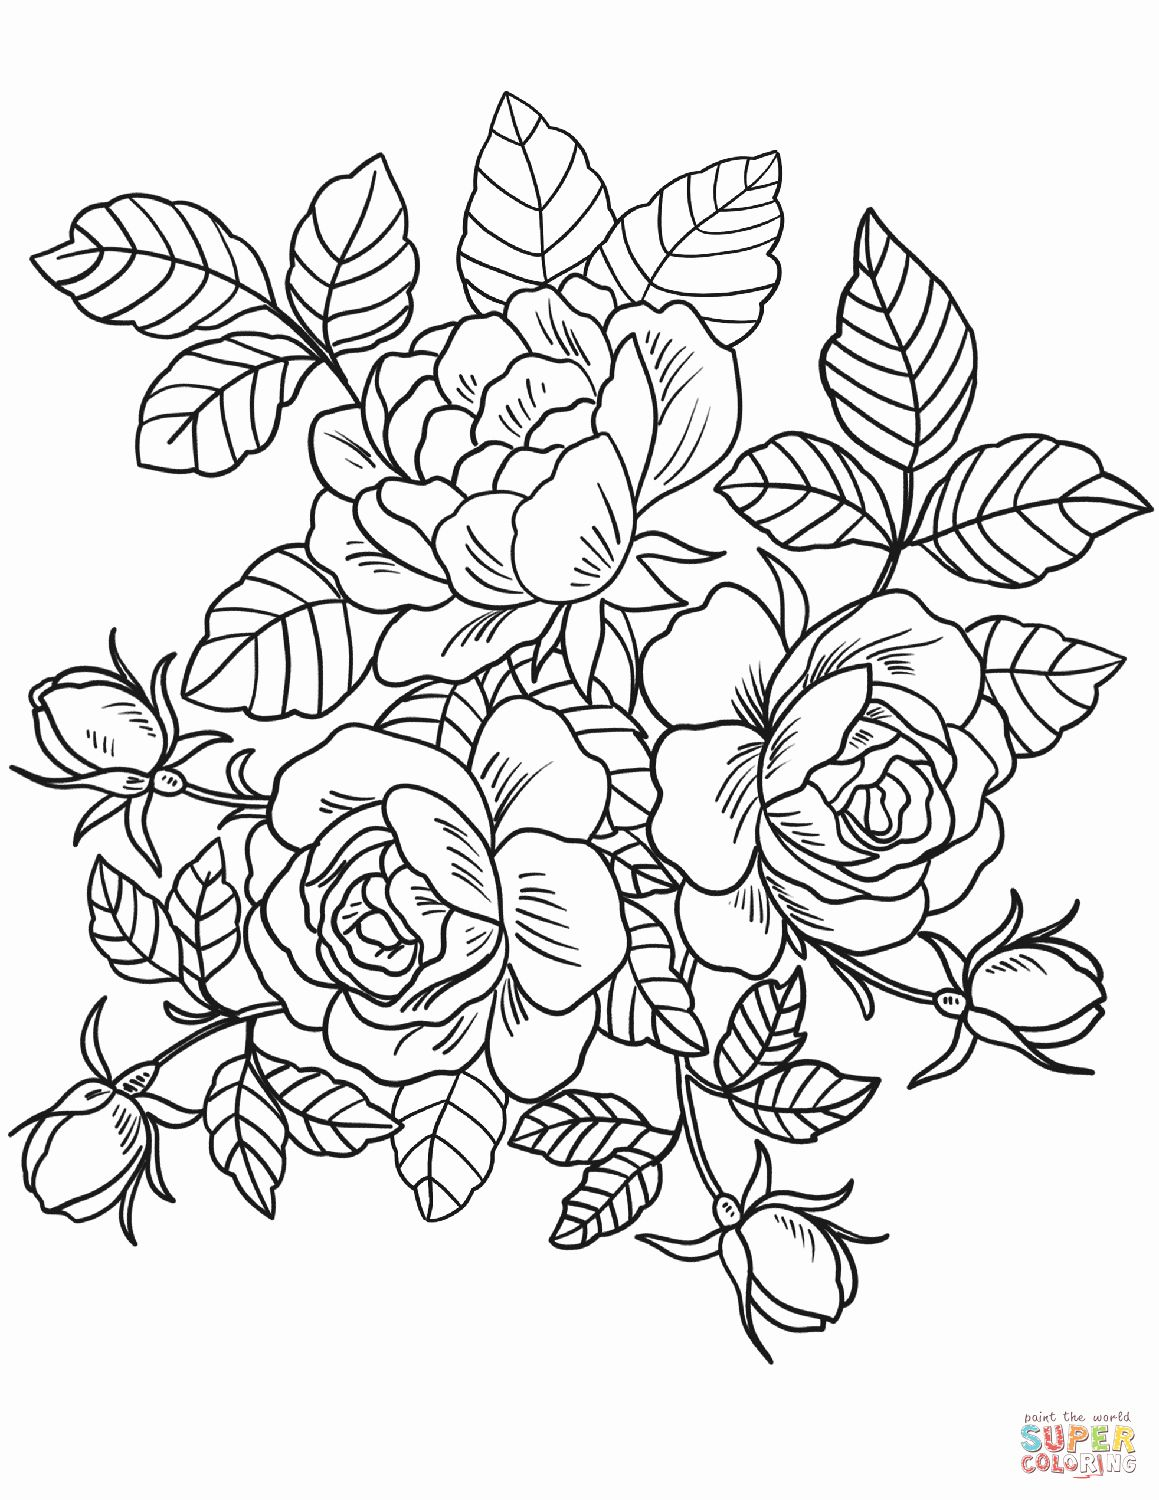 Free Coloring Pages Flowers Roses Unique Roses Flowers Coloring Page Detailed Coloring Pages Rose Coloring Pages Printable Flower Coloring Pages